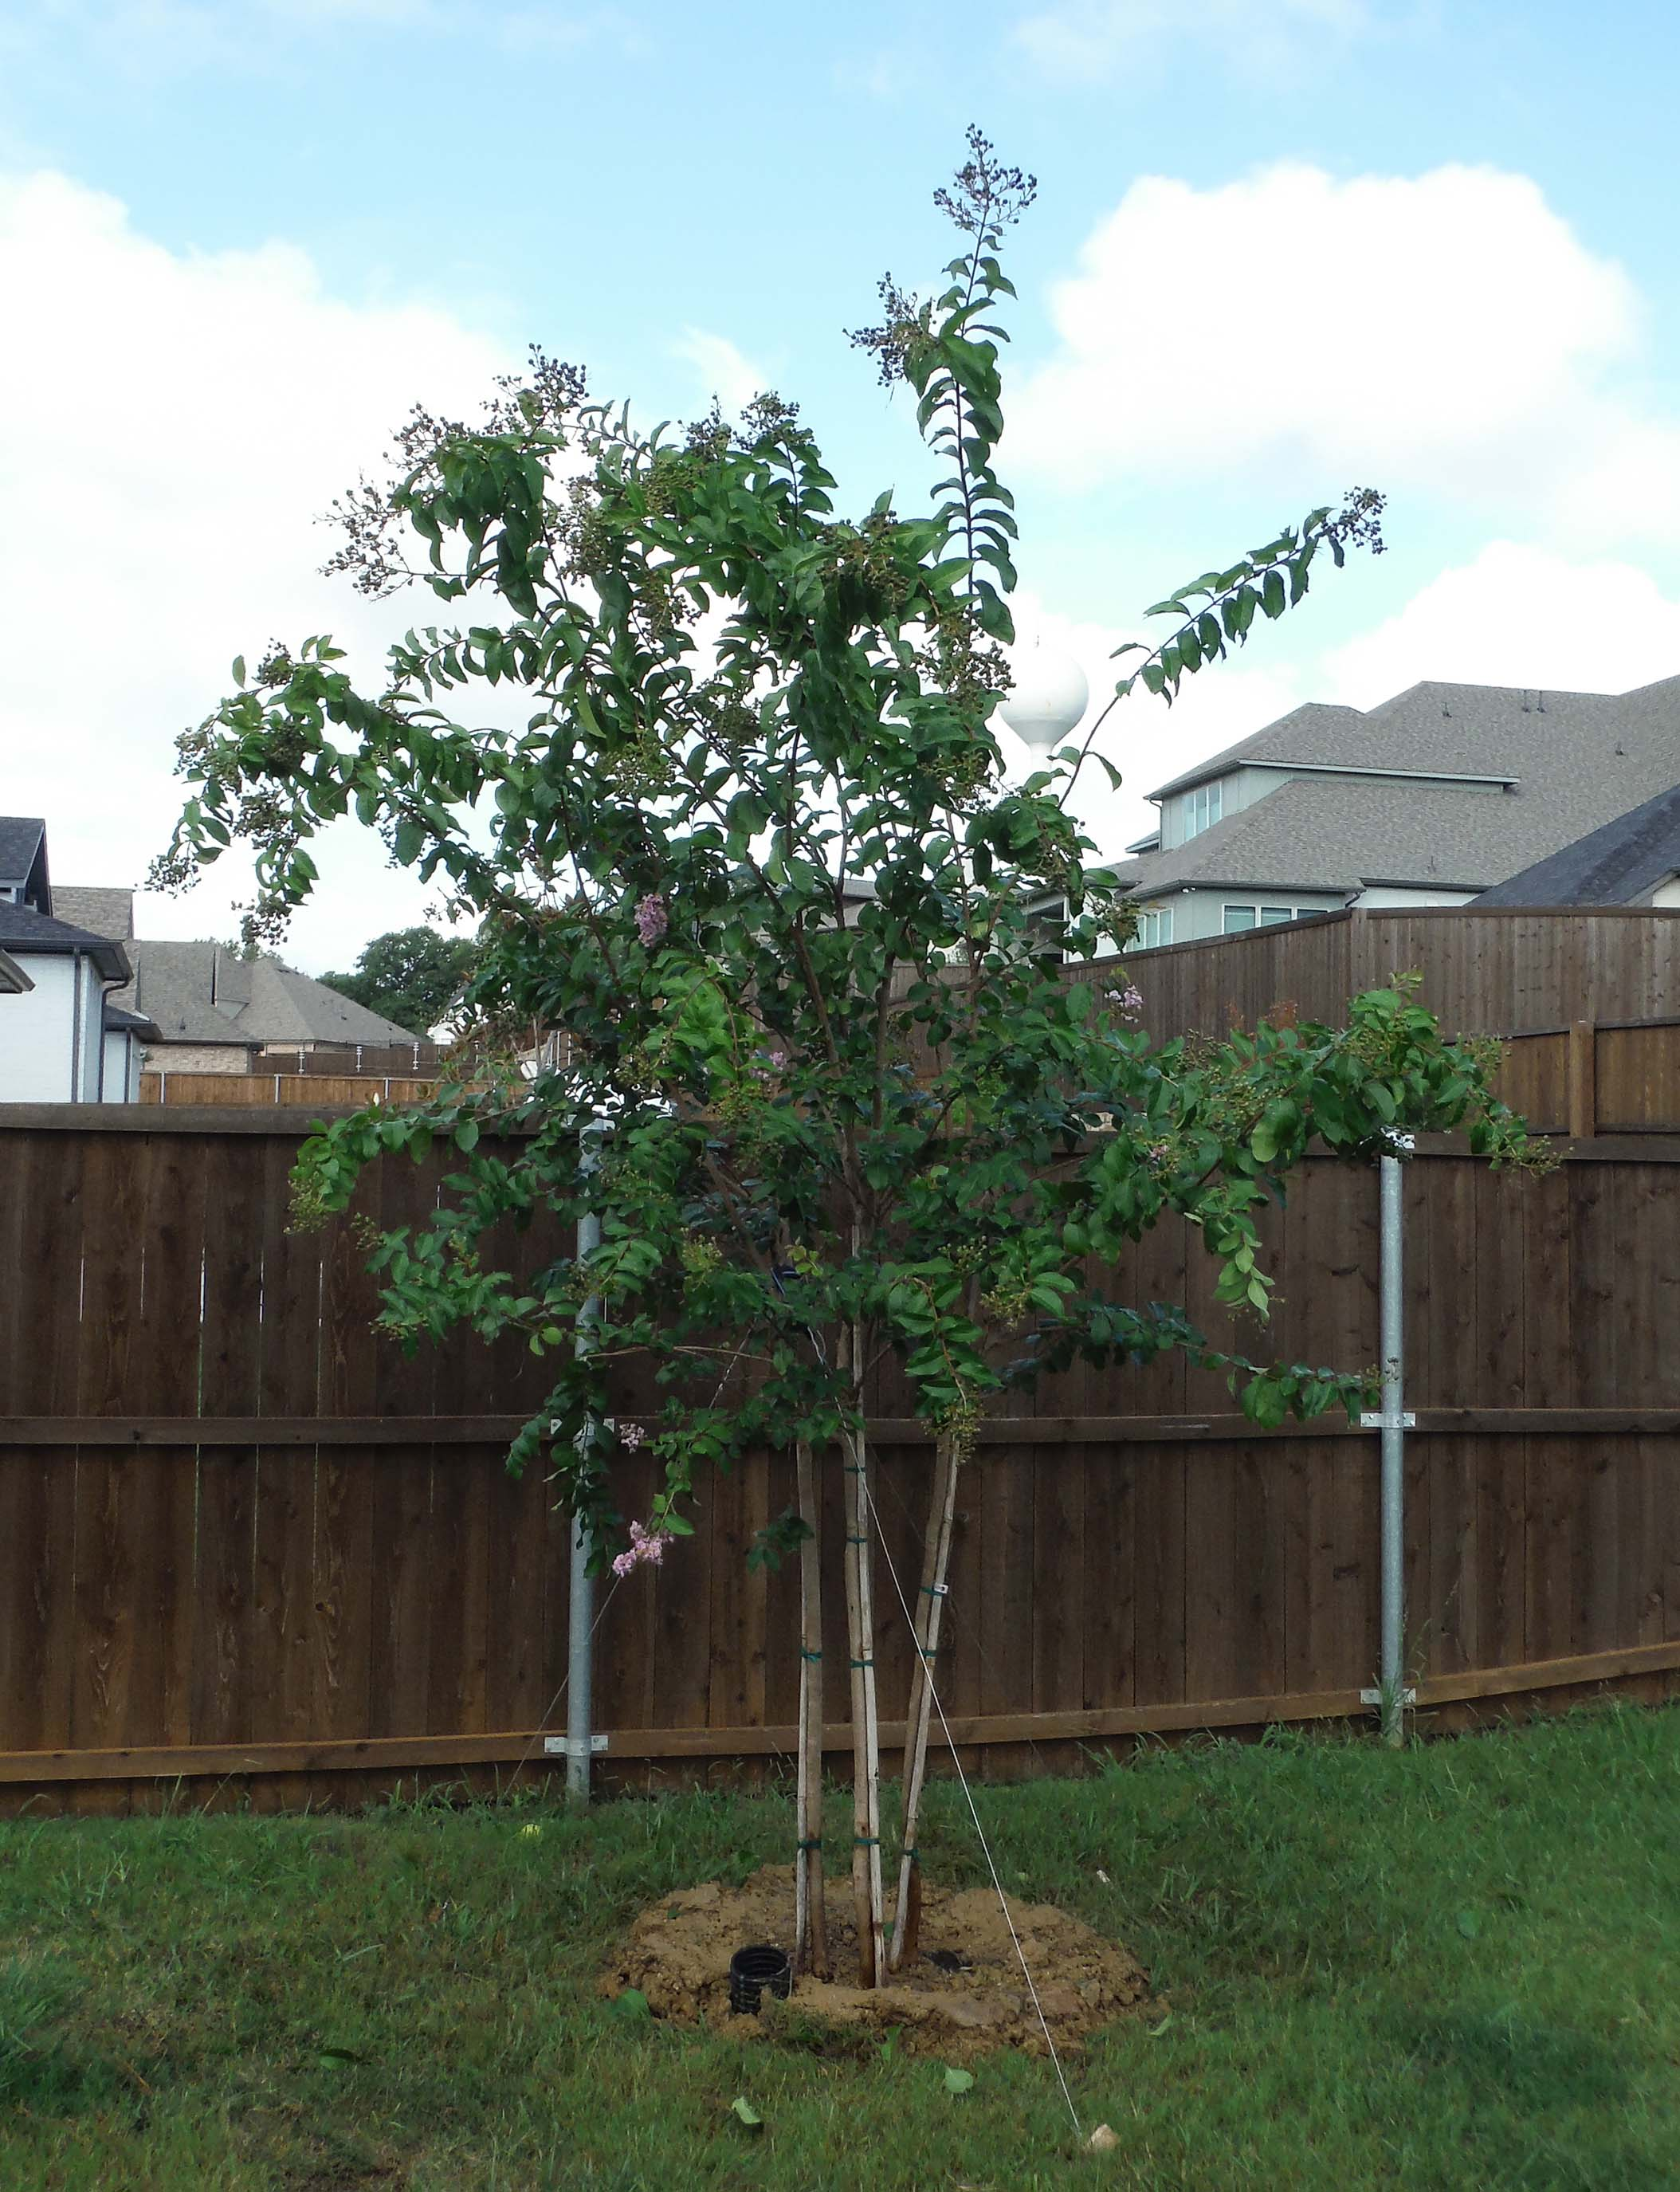 Muskogee Crape Myrtle installed in a backyard by Treeland Nursery.